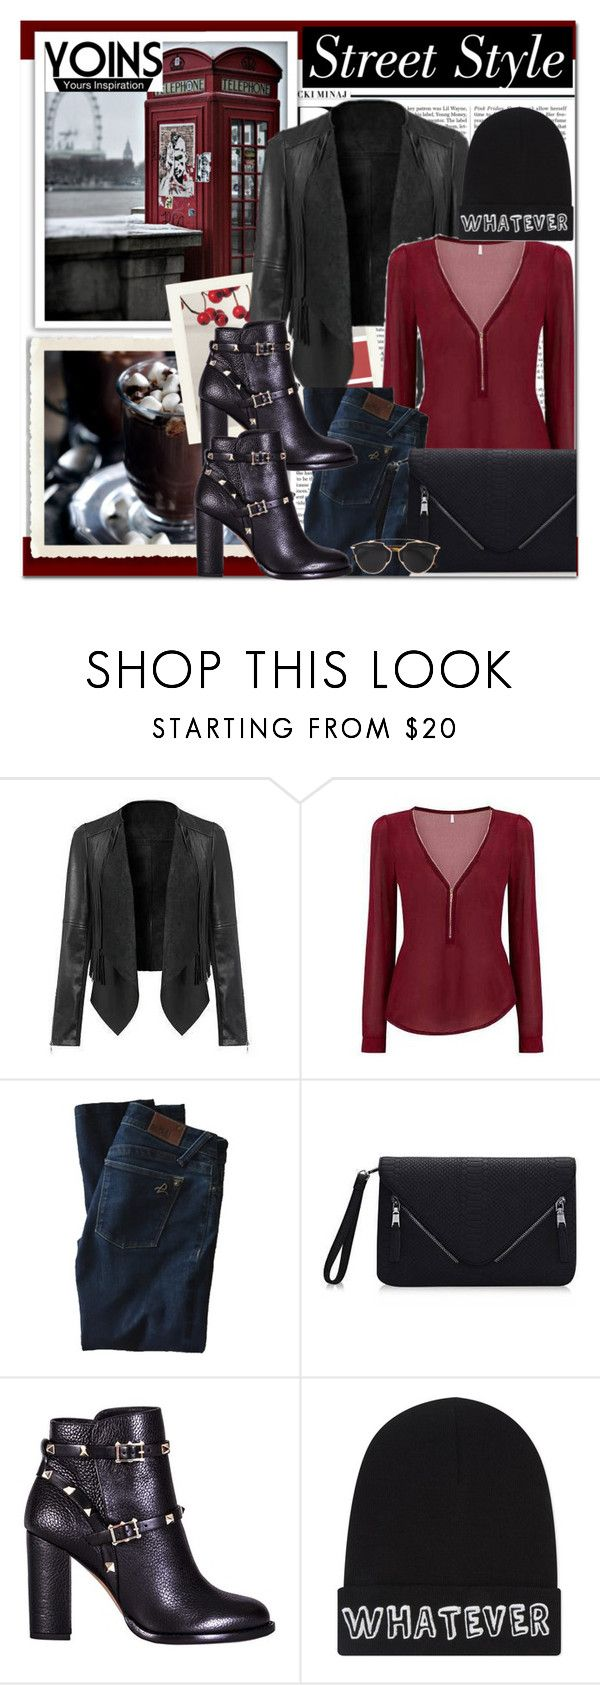 """""""Yoins 10"""" by lara-fam ❤ liked on Polyvore featuring Nicki Minaj, DL1961 Premium Denim, Valentino, Local Heroes, Christian Dior, women's clothing, women, female, woman and misses"""